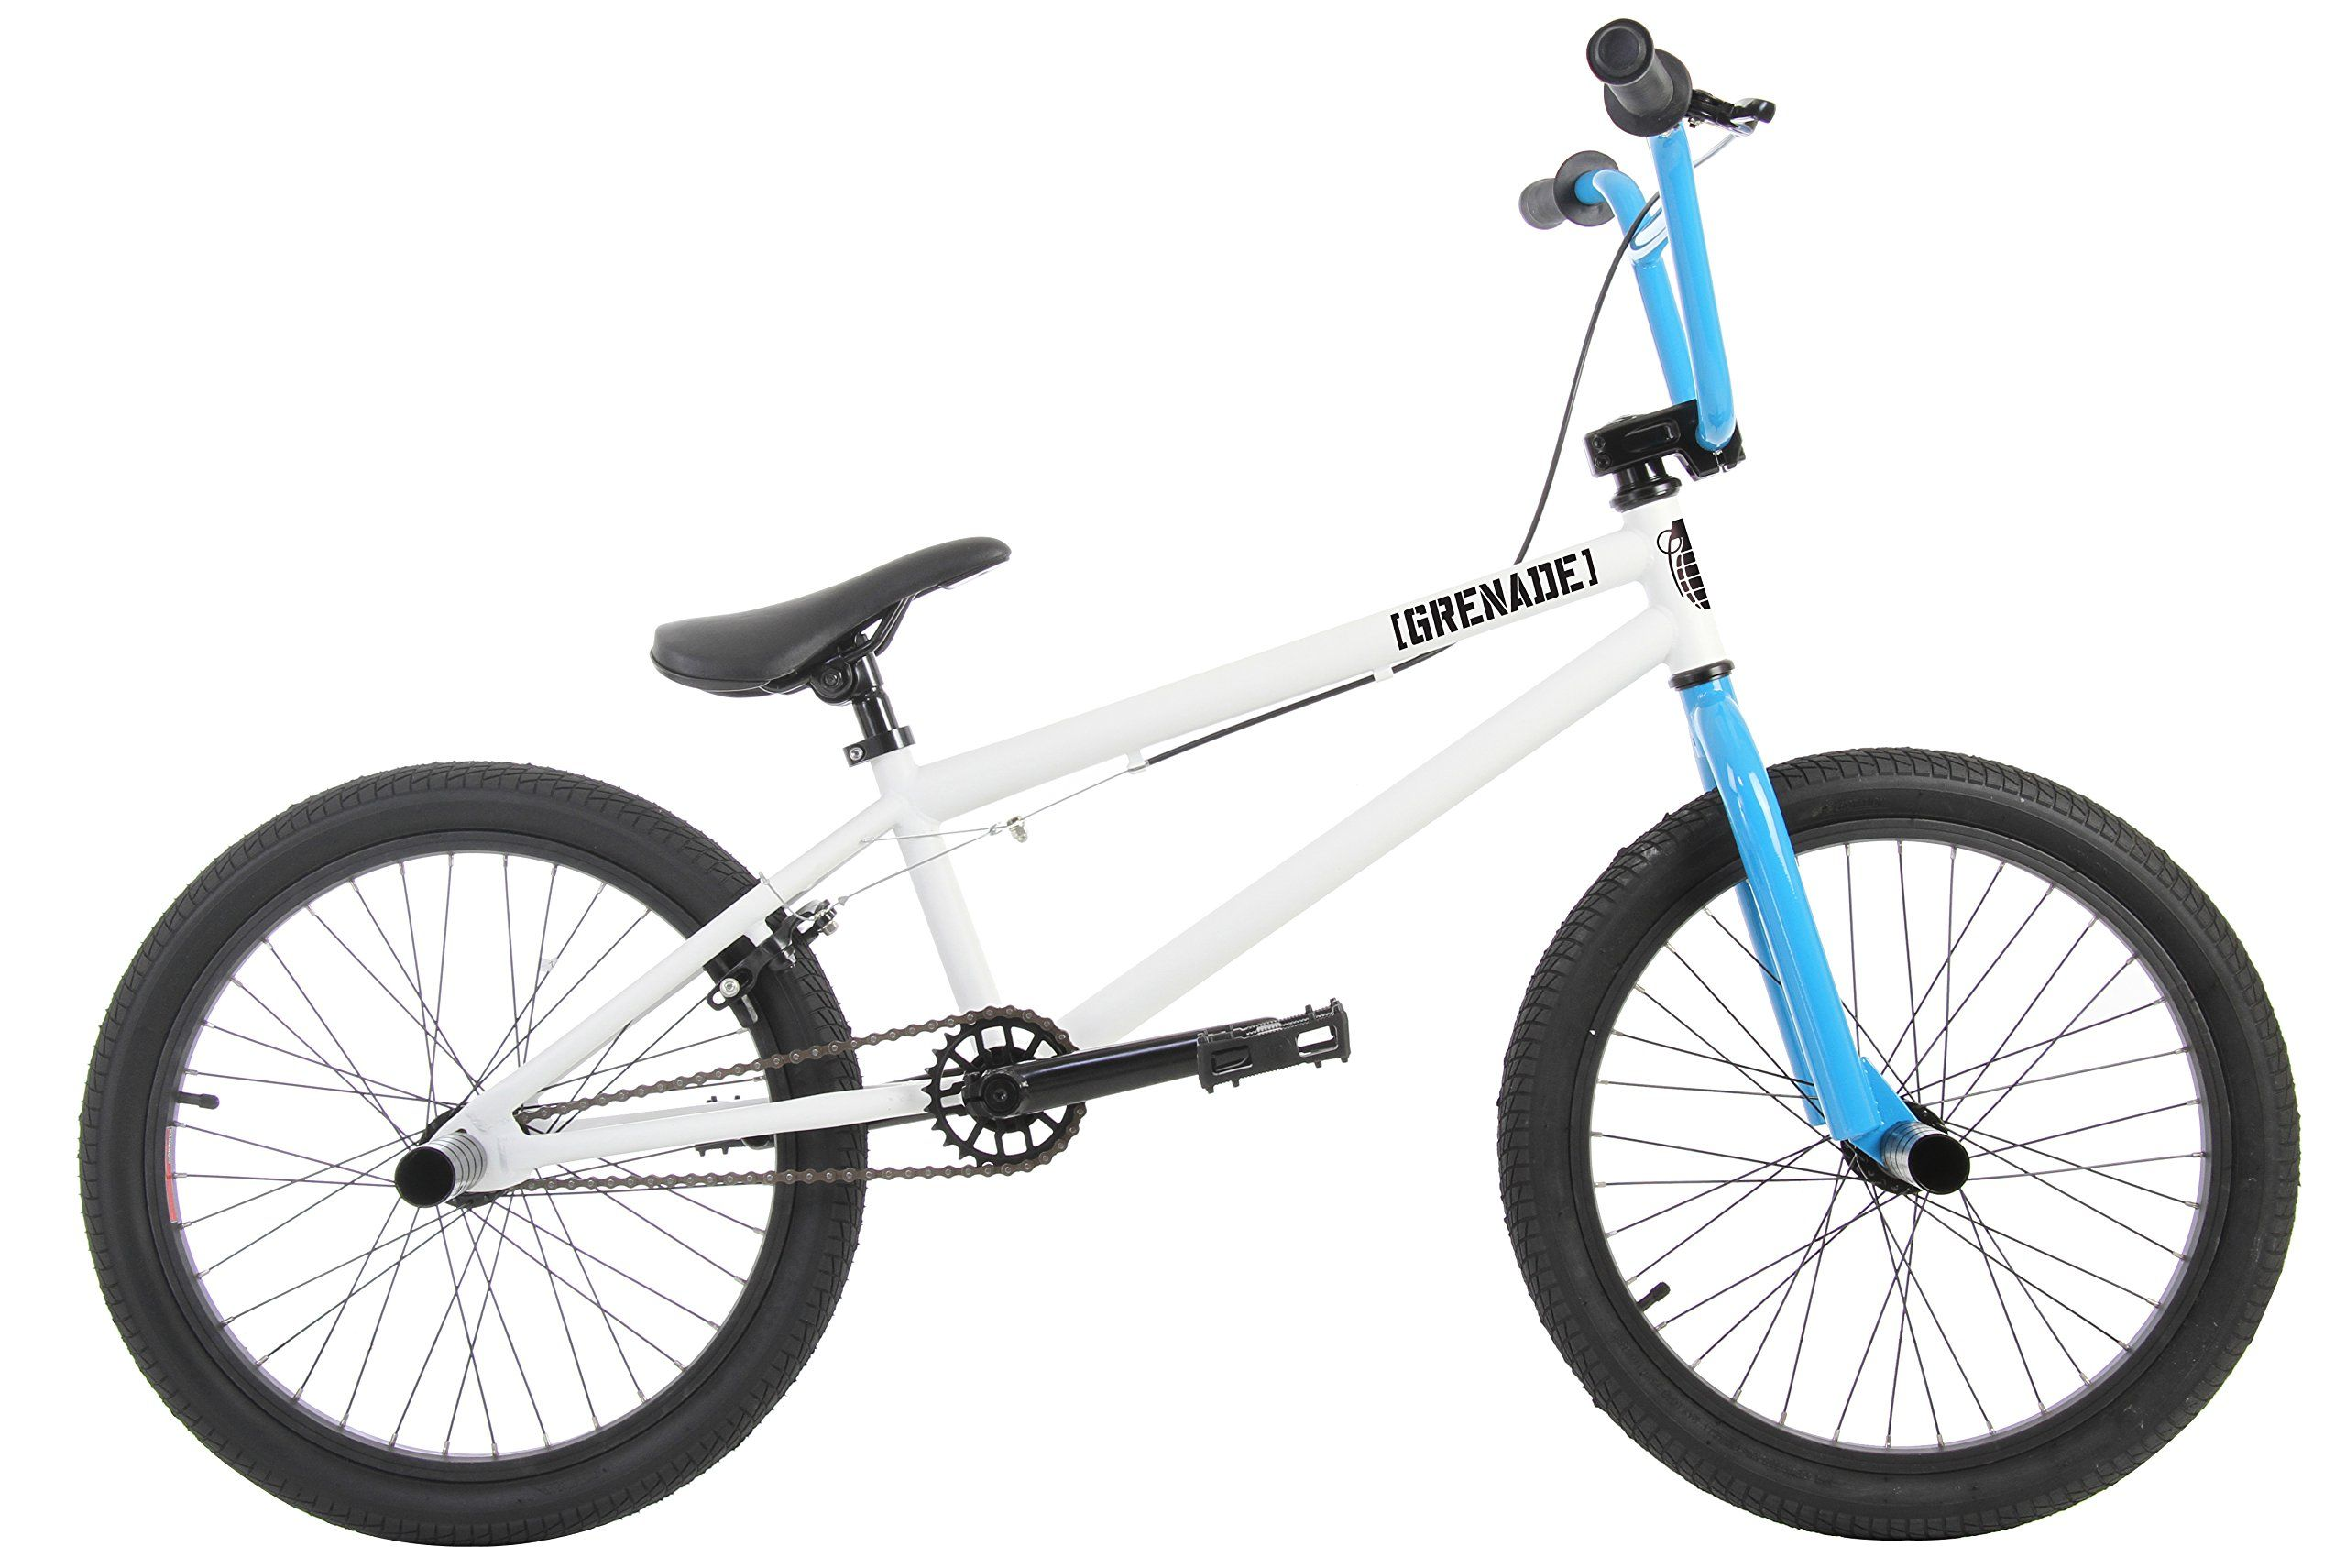 Grenade B2 Bmx Bike 20in Mens Sz 20in 20 5in Top Tube Frame Chromoly Main Tubes Hi Ten Steel Forks Hi Ten Steel Handlebars Hi Ten Best Bmx Bmx Bikes Bmx